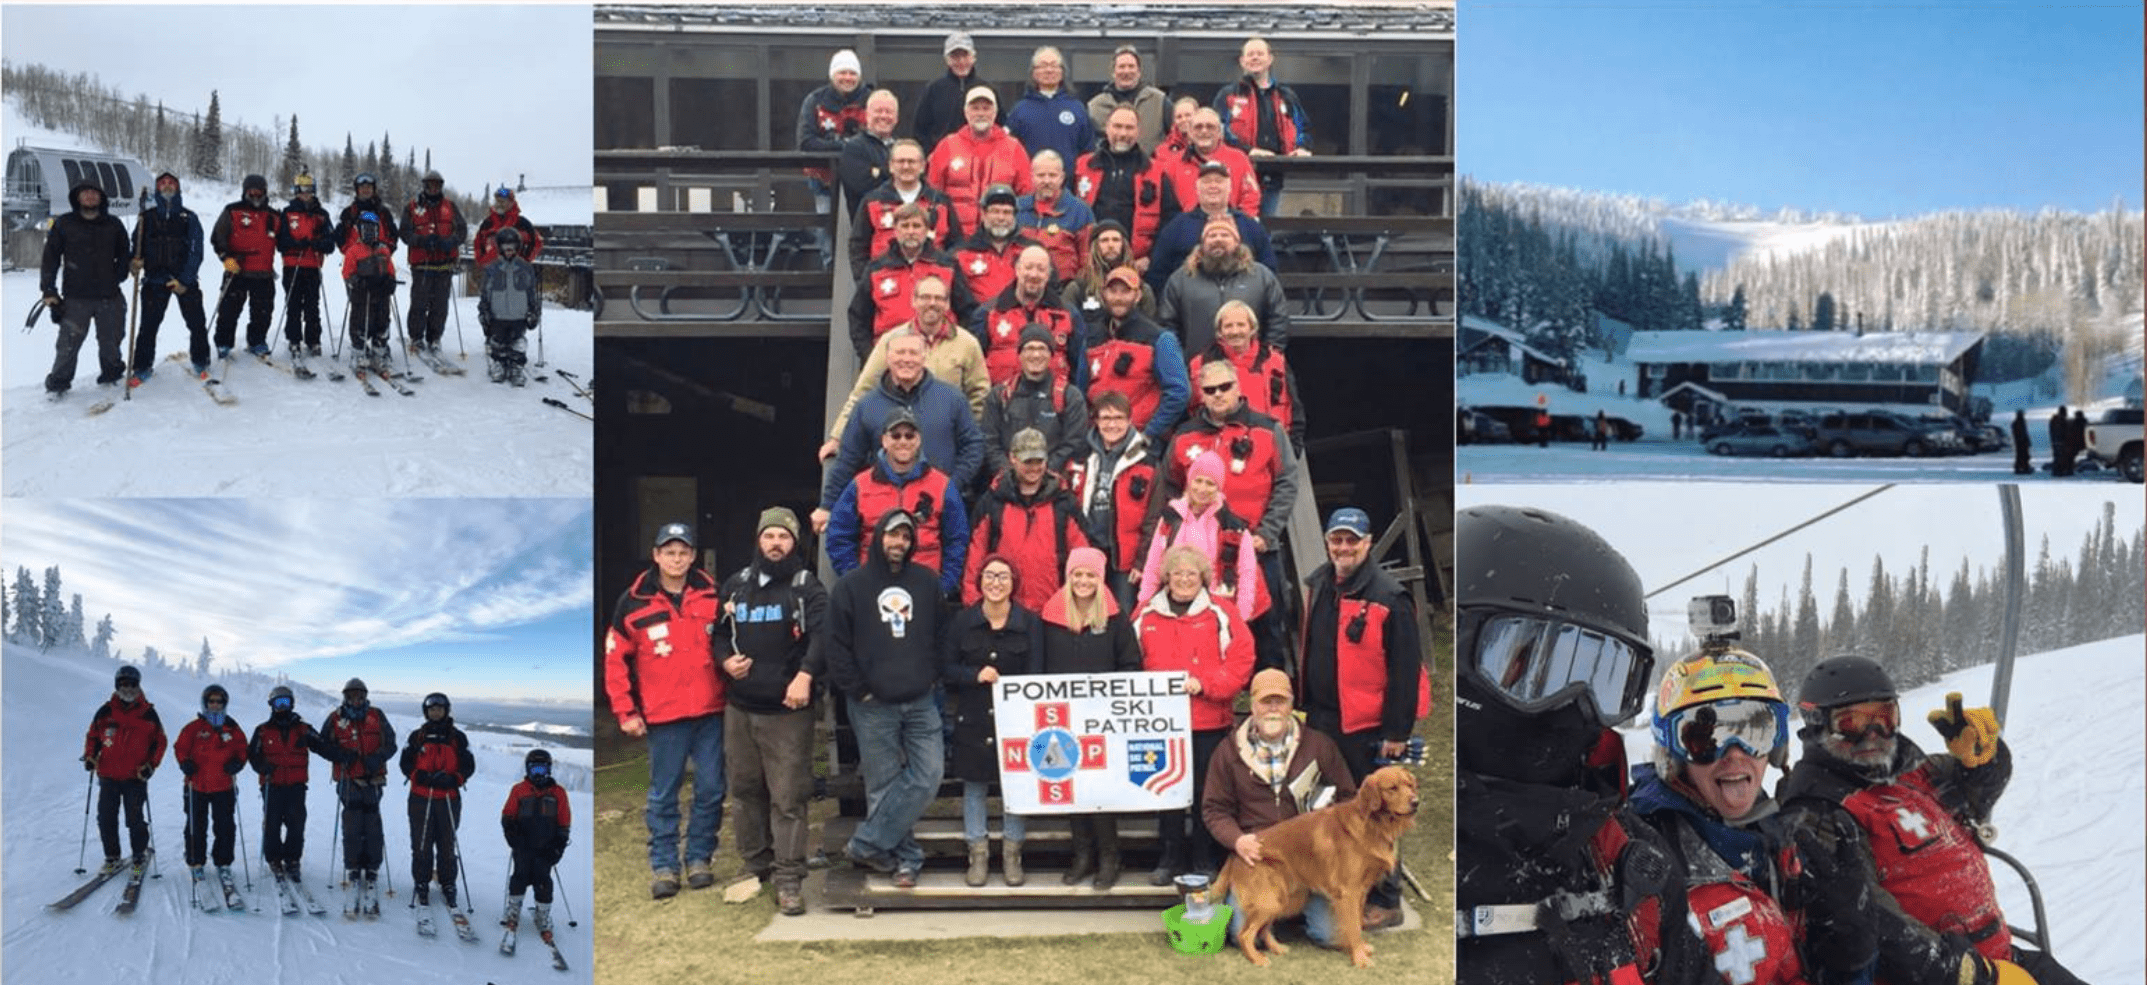 ski patrollers at pomerelle mountain resort save one of their own